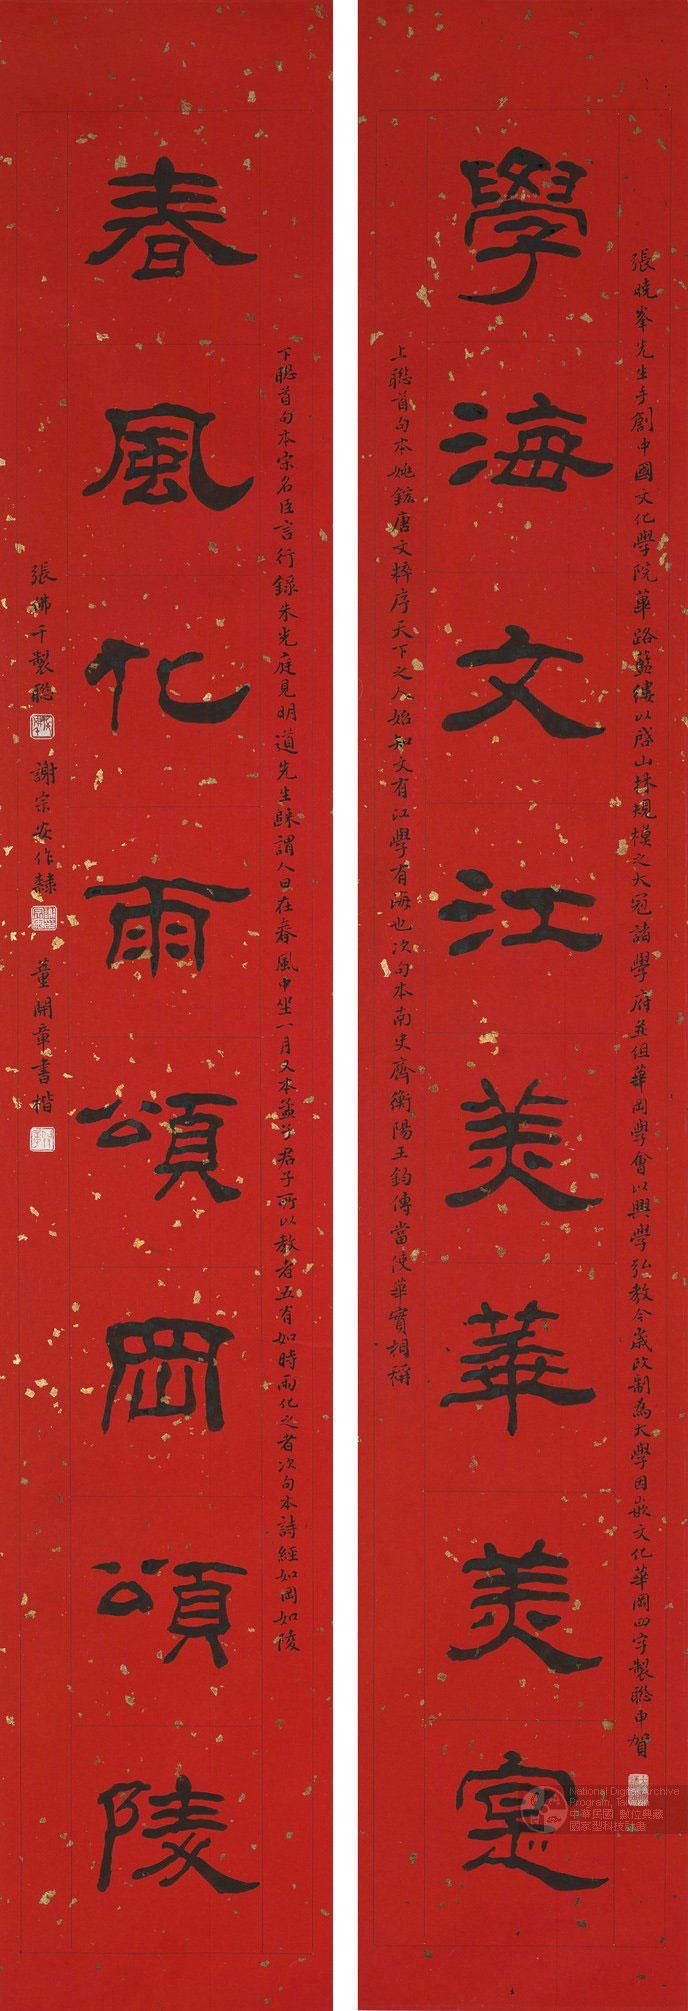 36 Best Images About Chinese Calligraphy On Pinterest